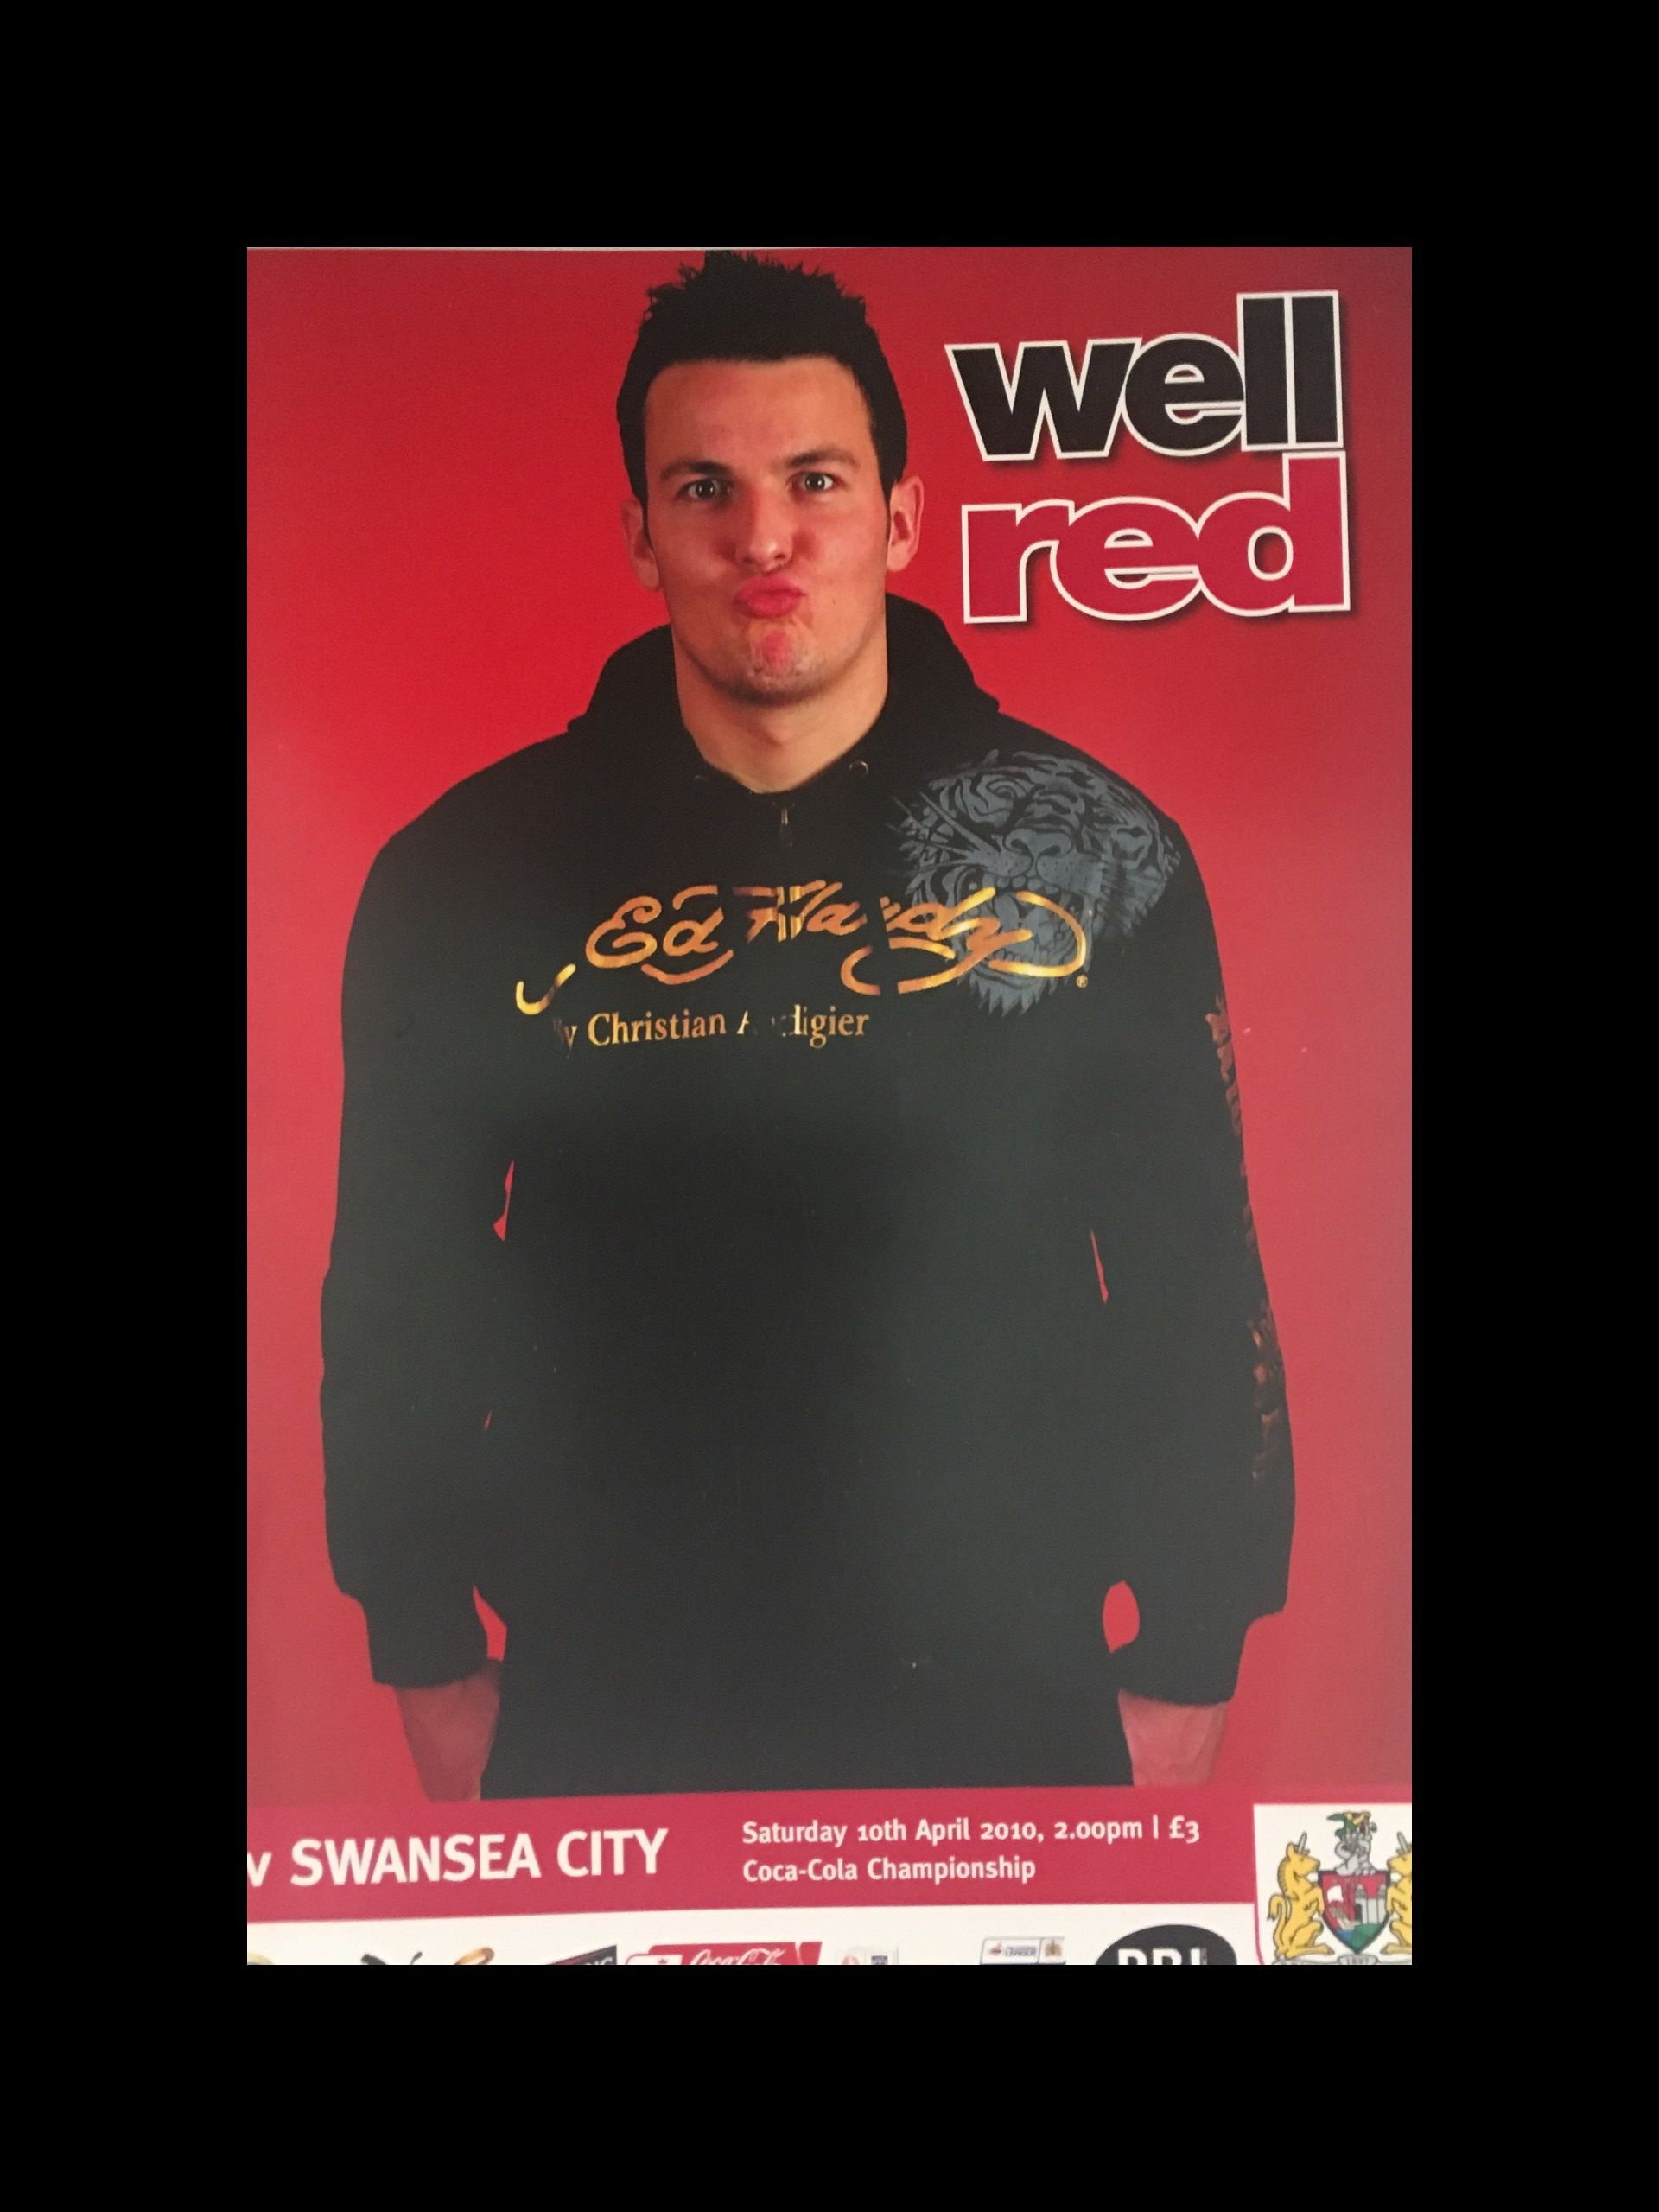 Bristol City v Swansea City 10-04-2010 Programme